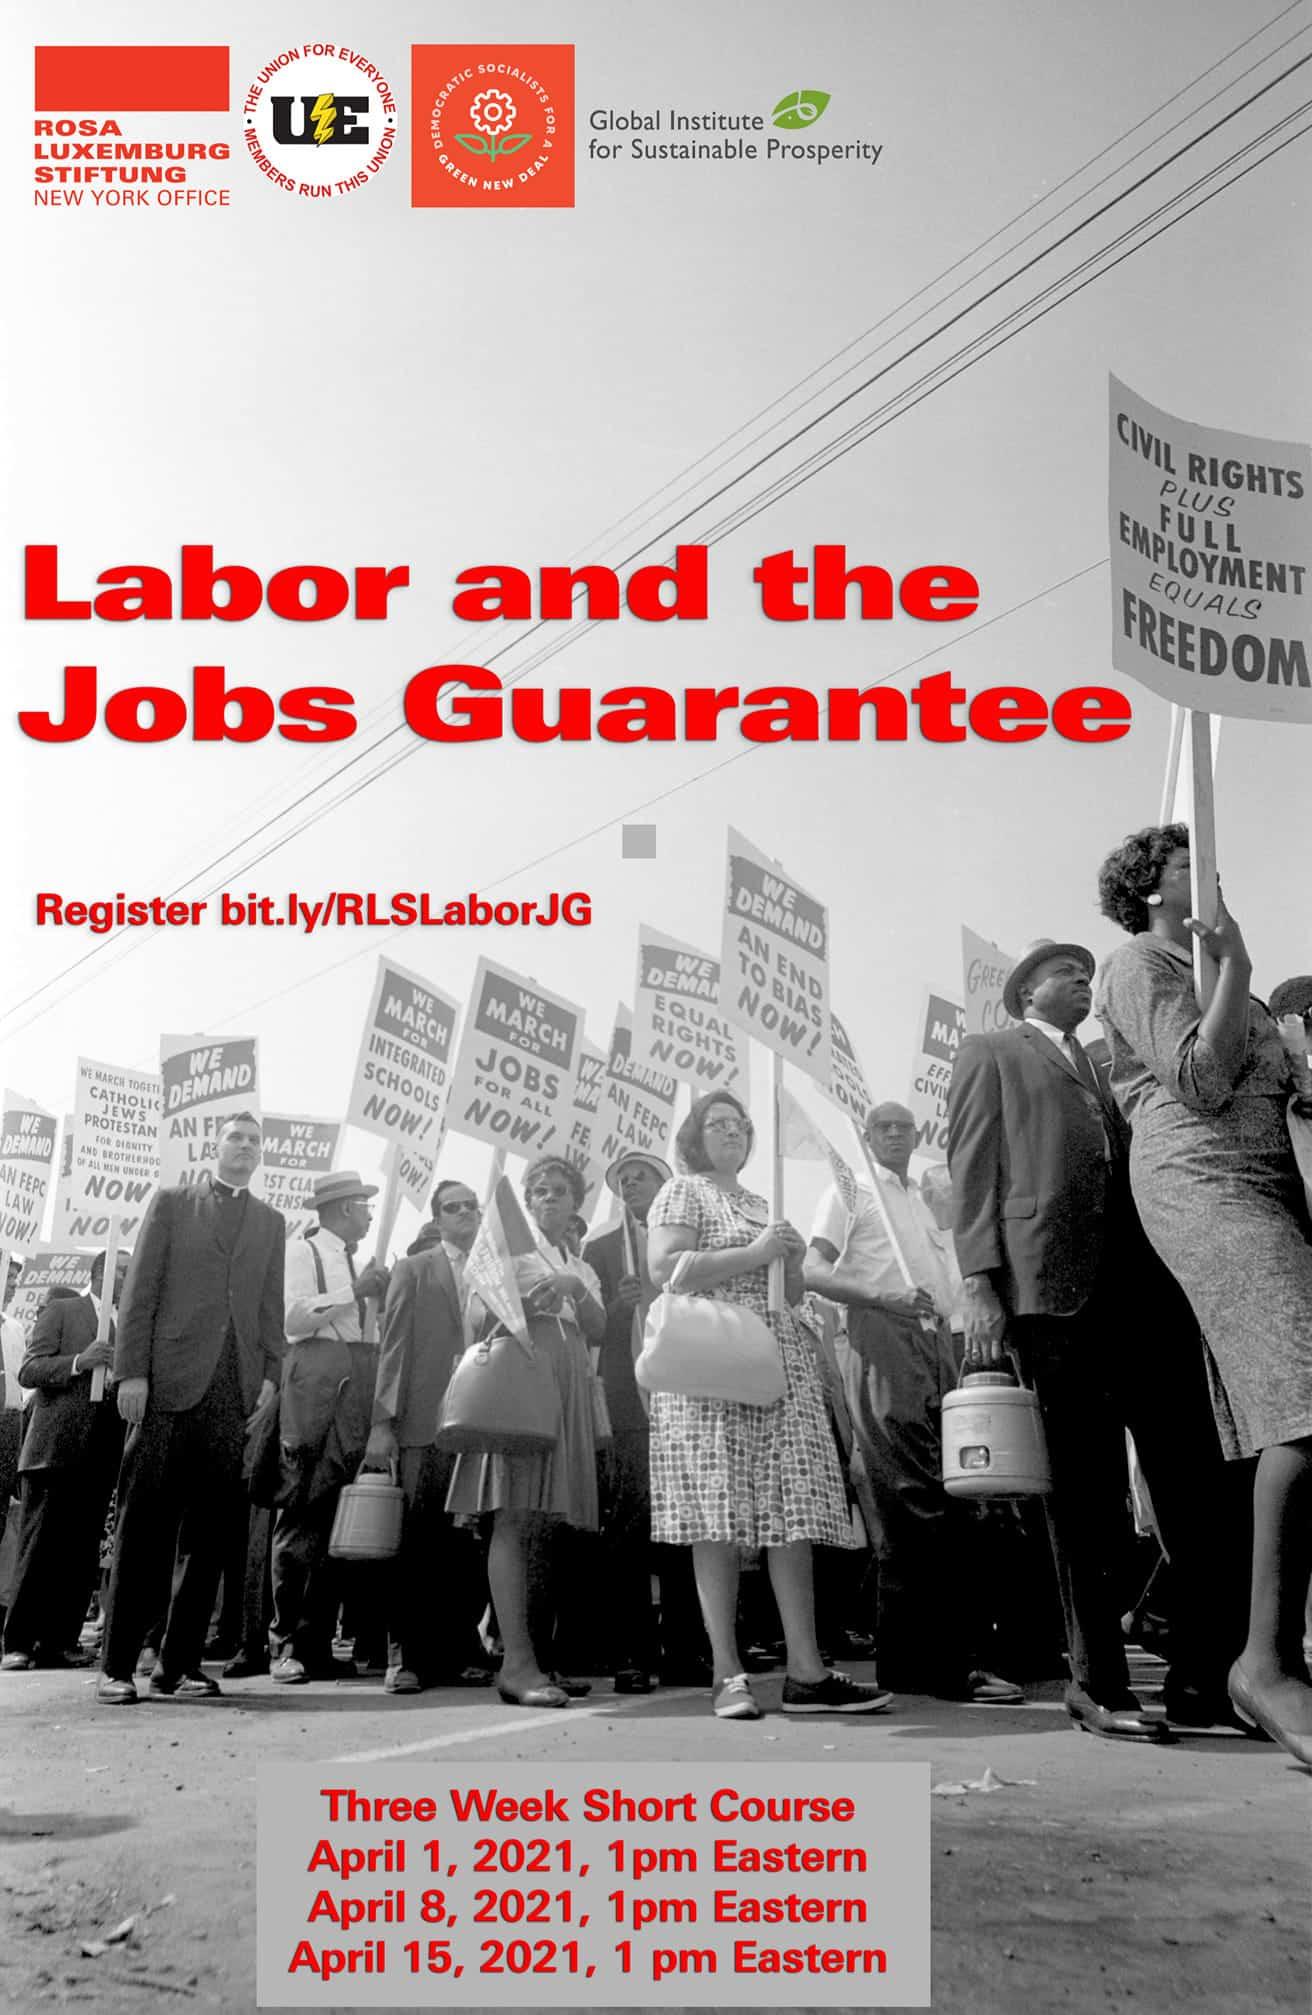 Labor and the Jobs Guarantee short course brochure